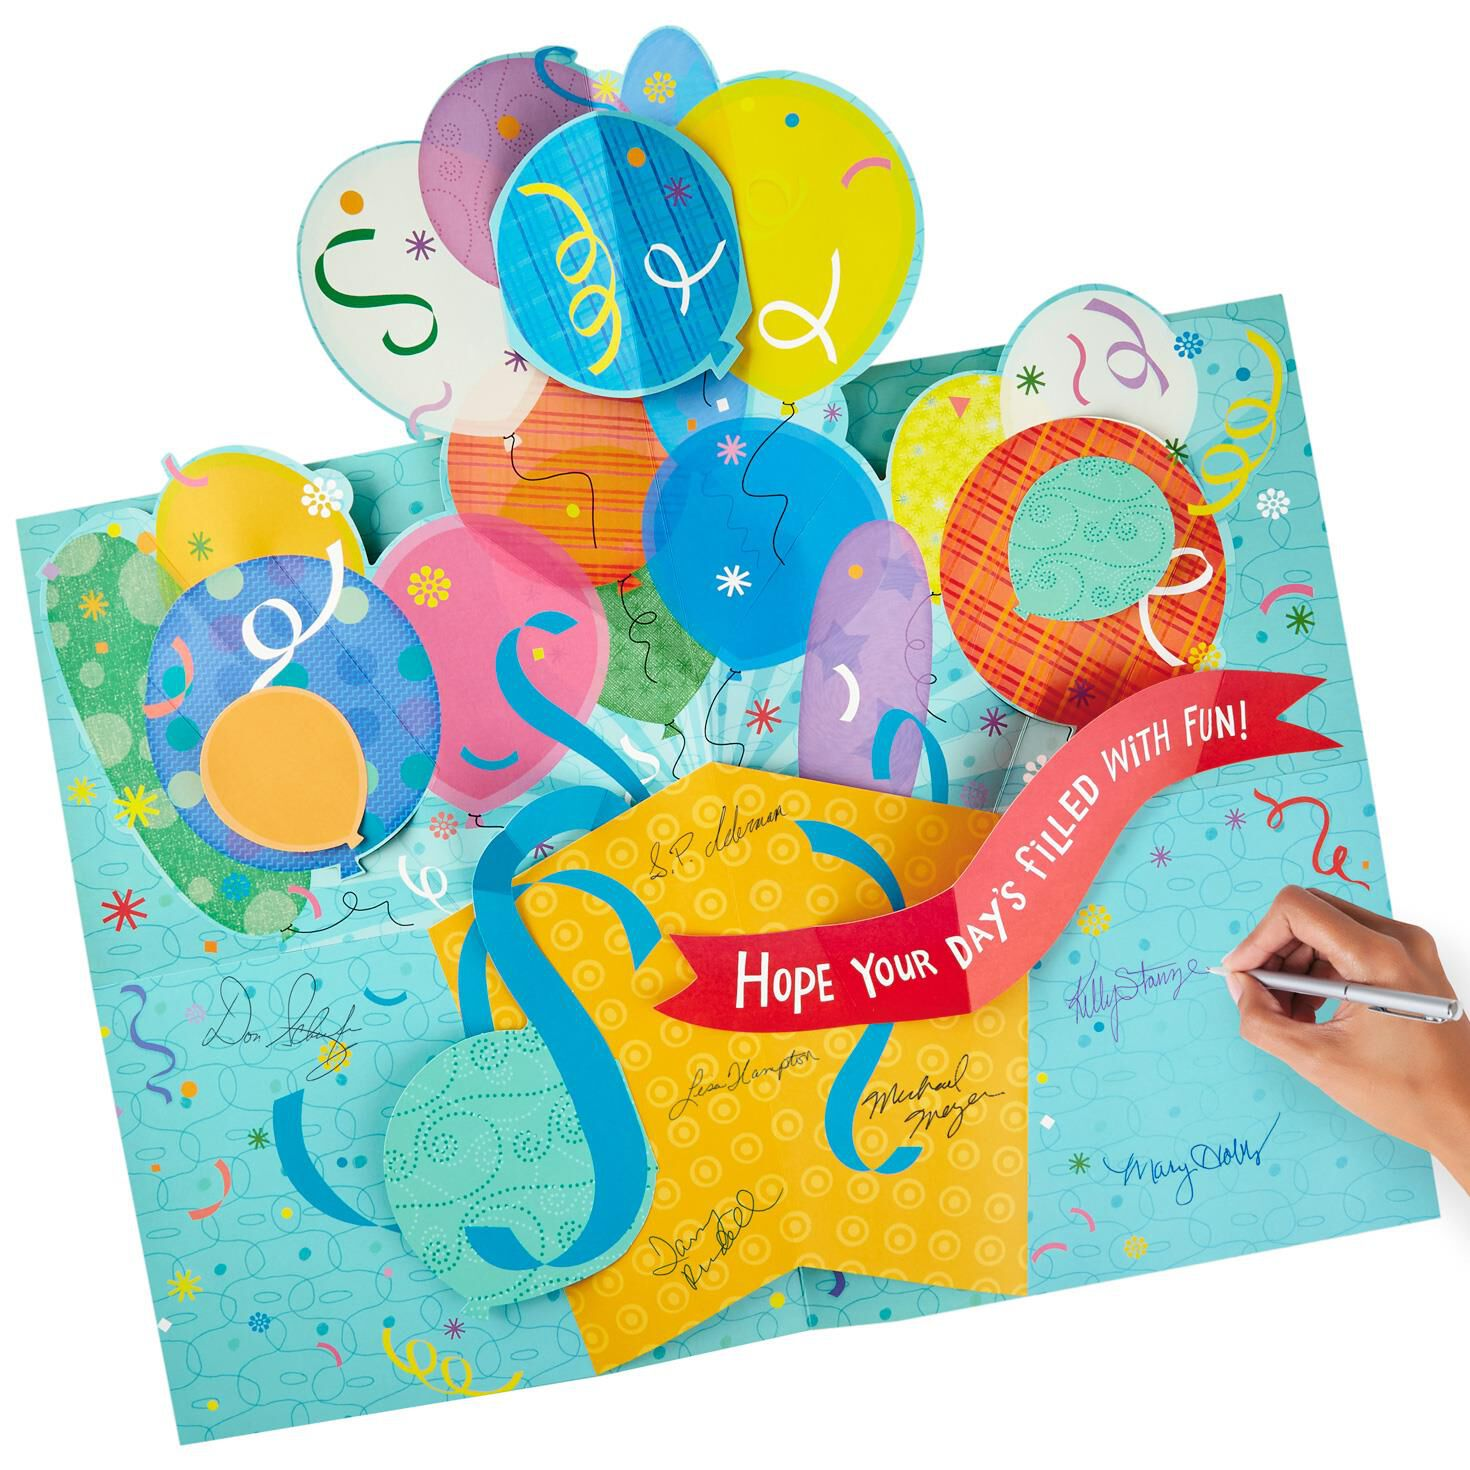 Balloons For Fun Pop Up Jumbo Birthday Card Root Source Image Jpg 1024x1024 Greeting Cards